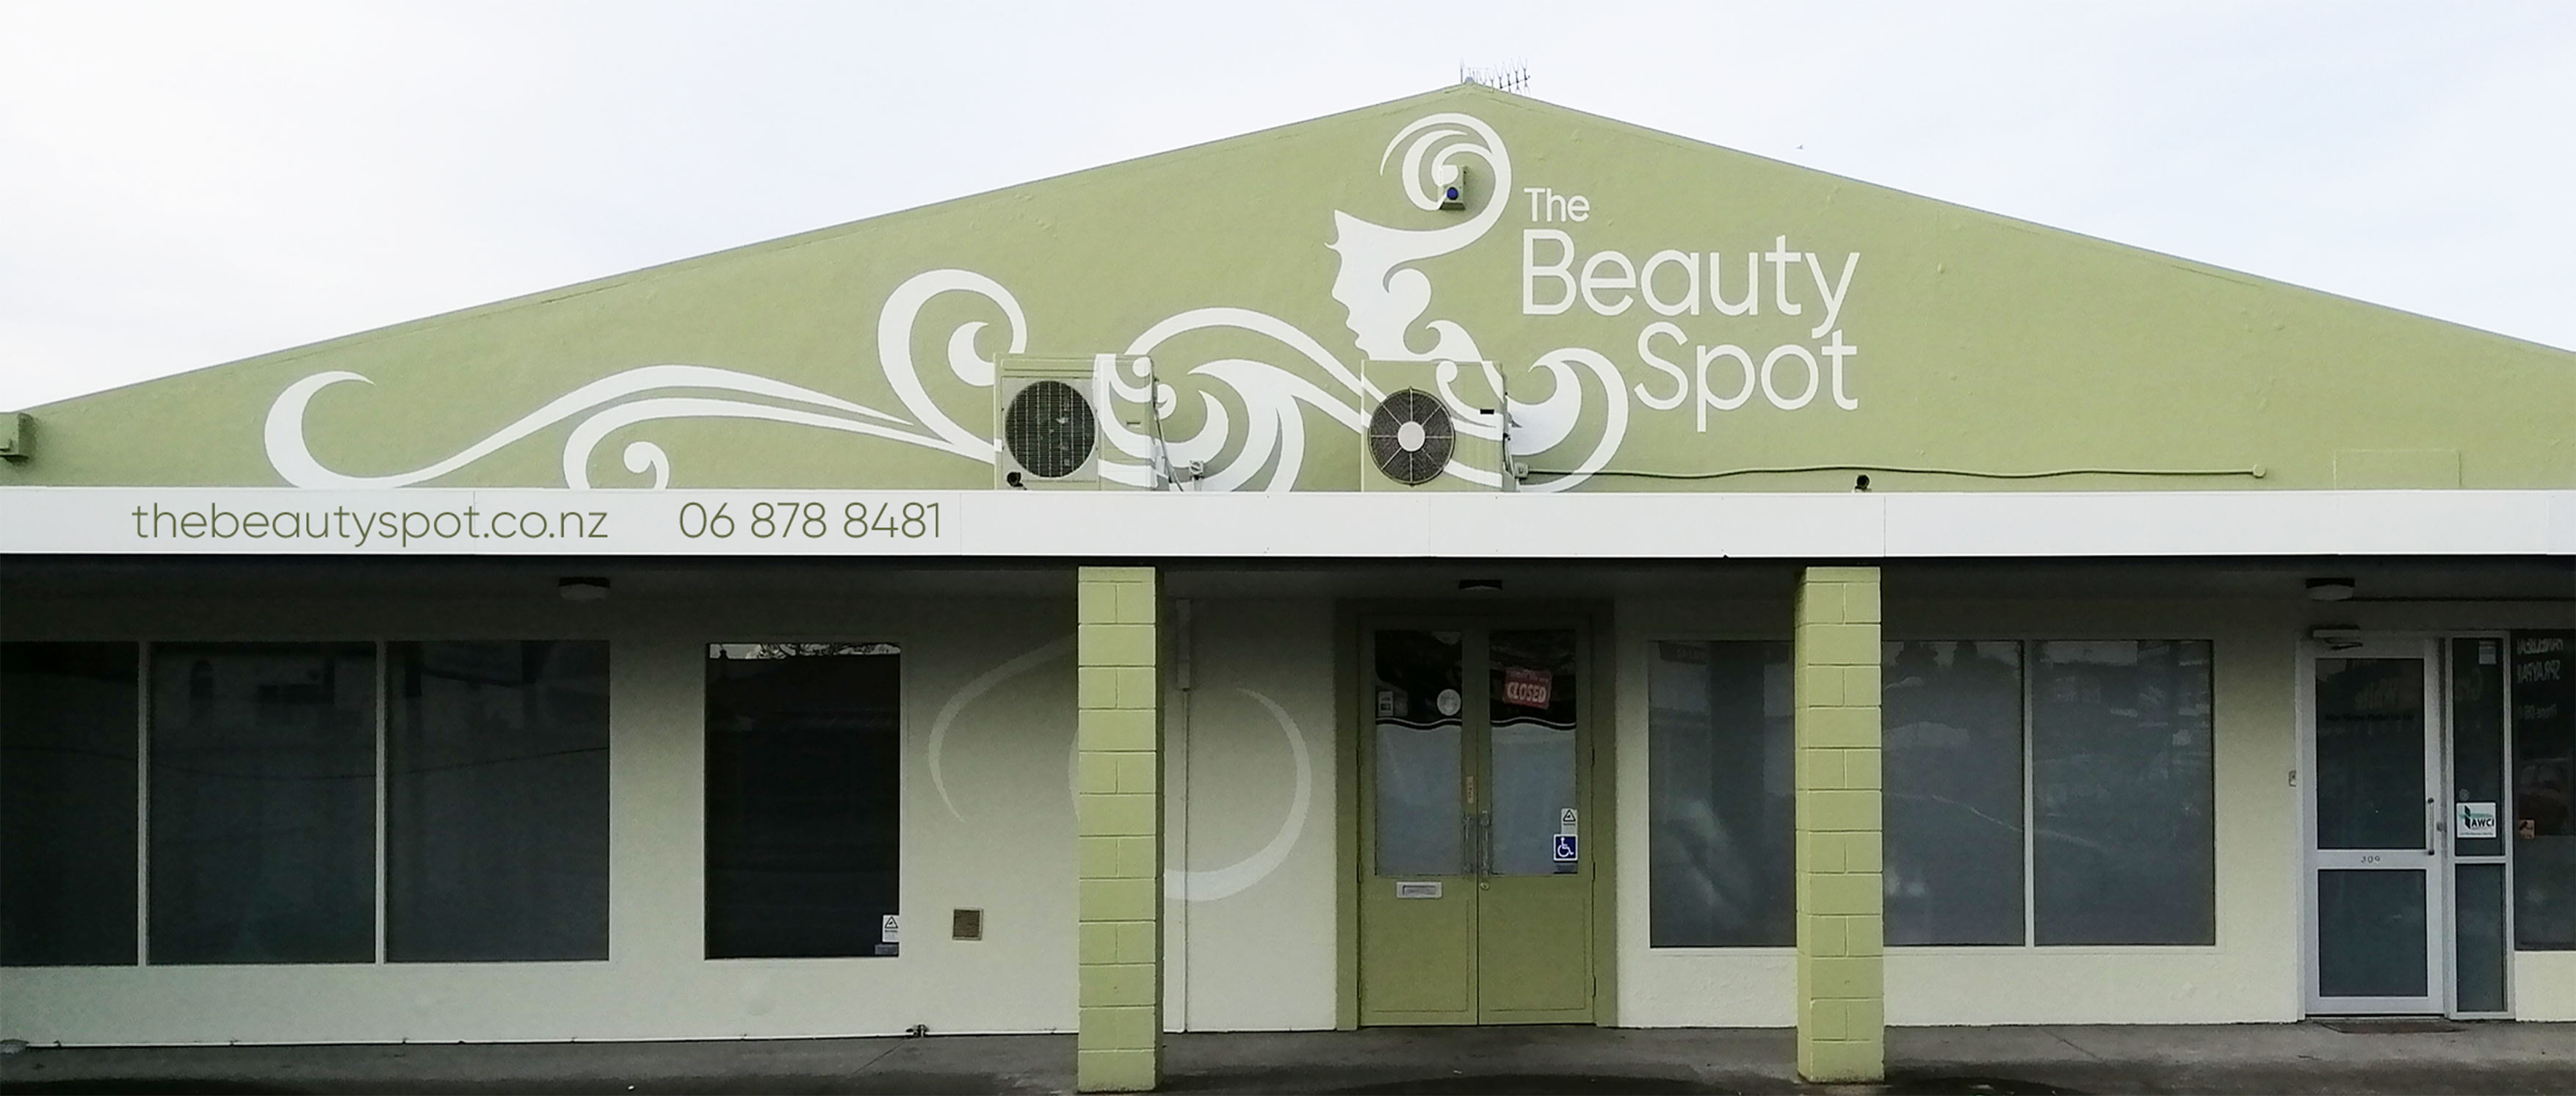 the beauty spot shop finished